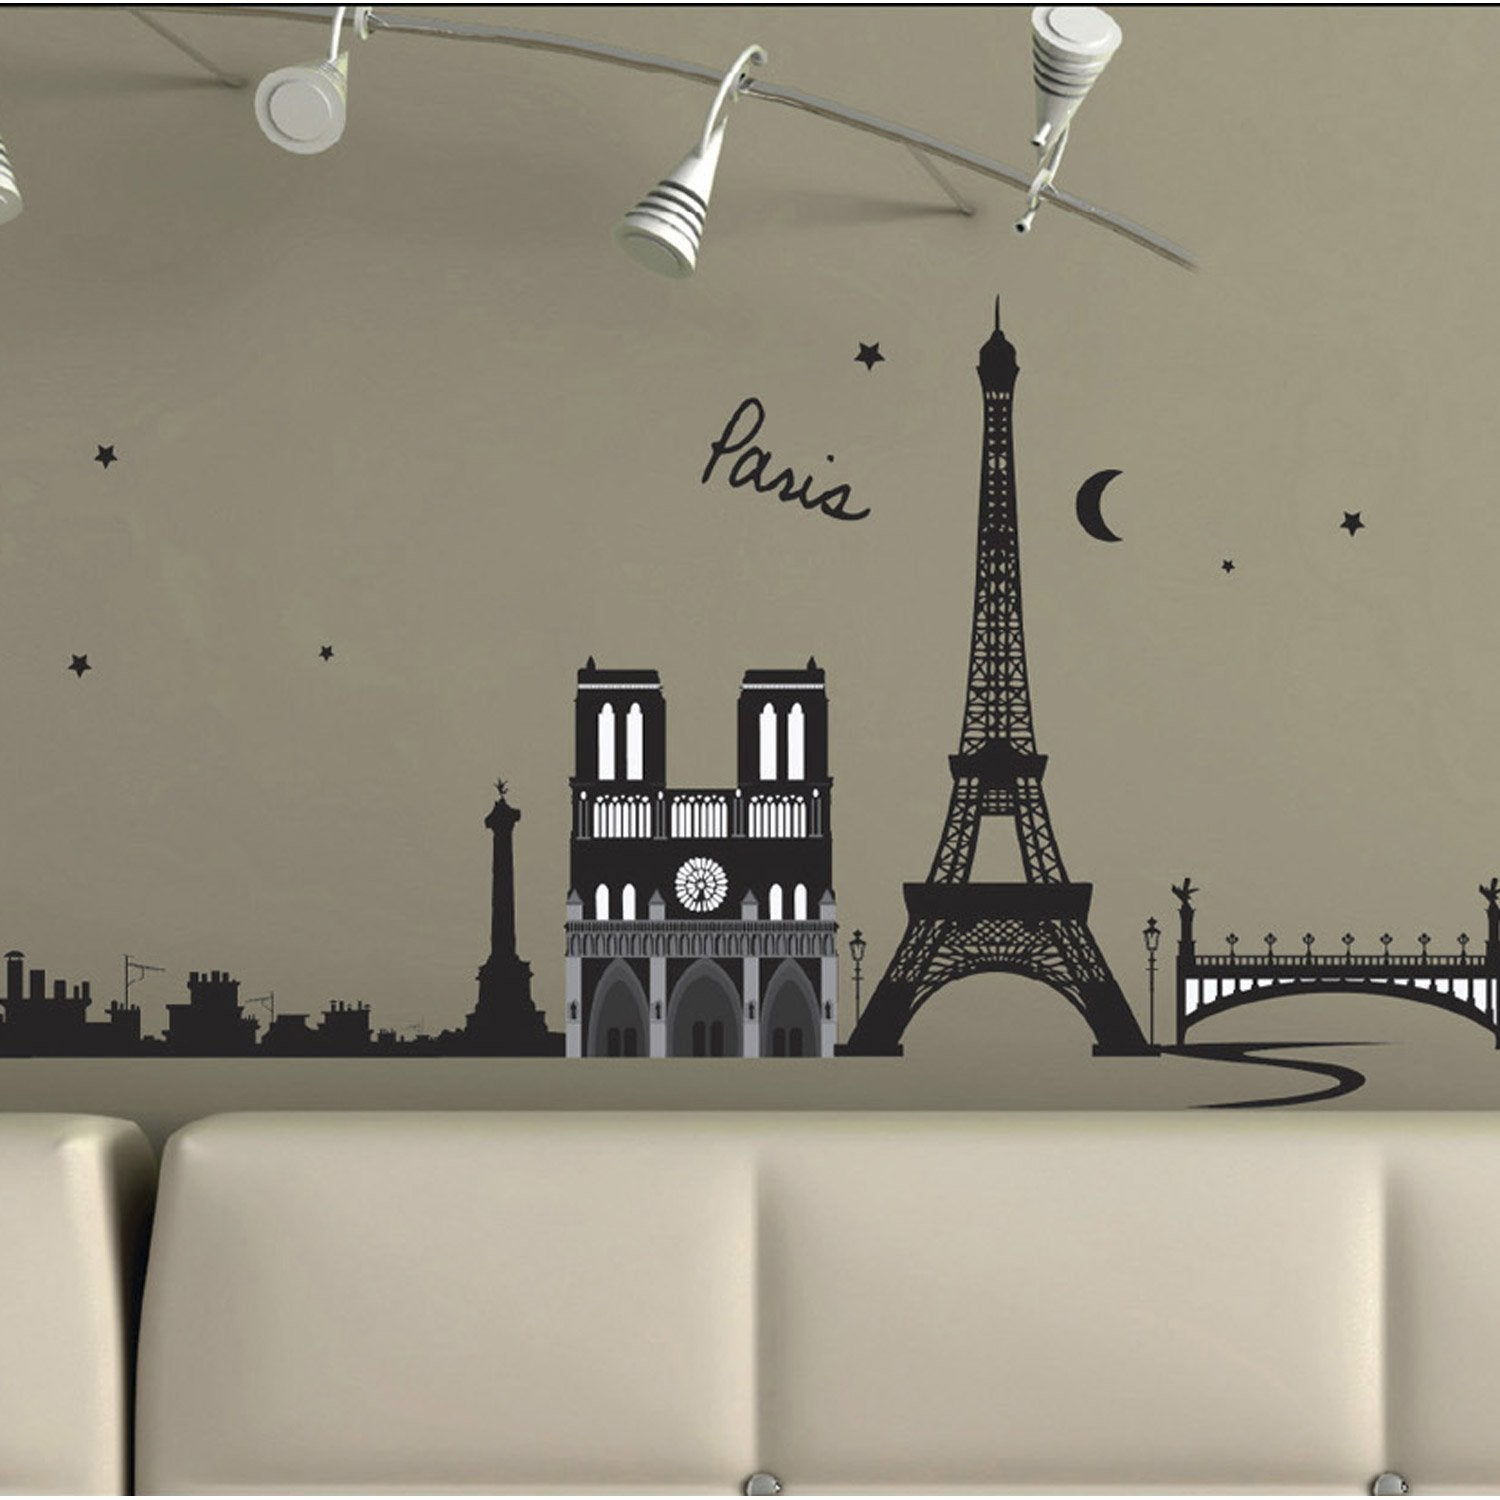 Sticker paris france 50 cm x 70 cm leroy merlin - Cours menuiserie paris ...